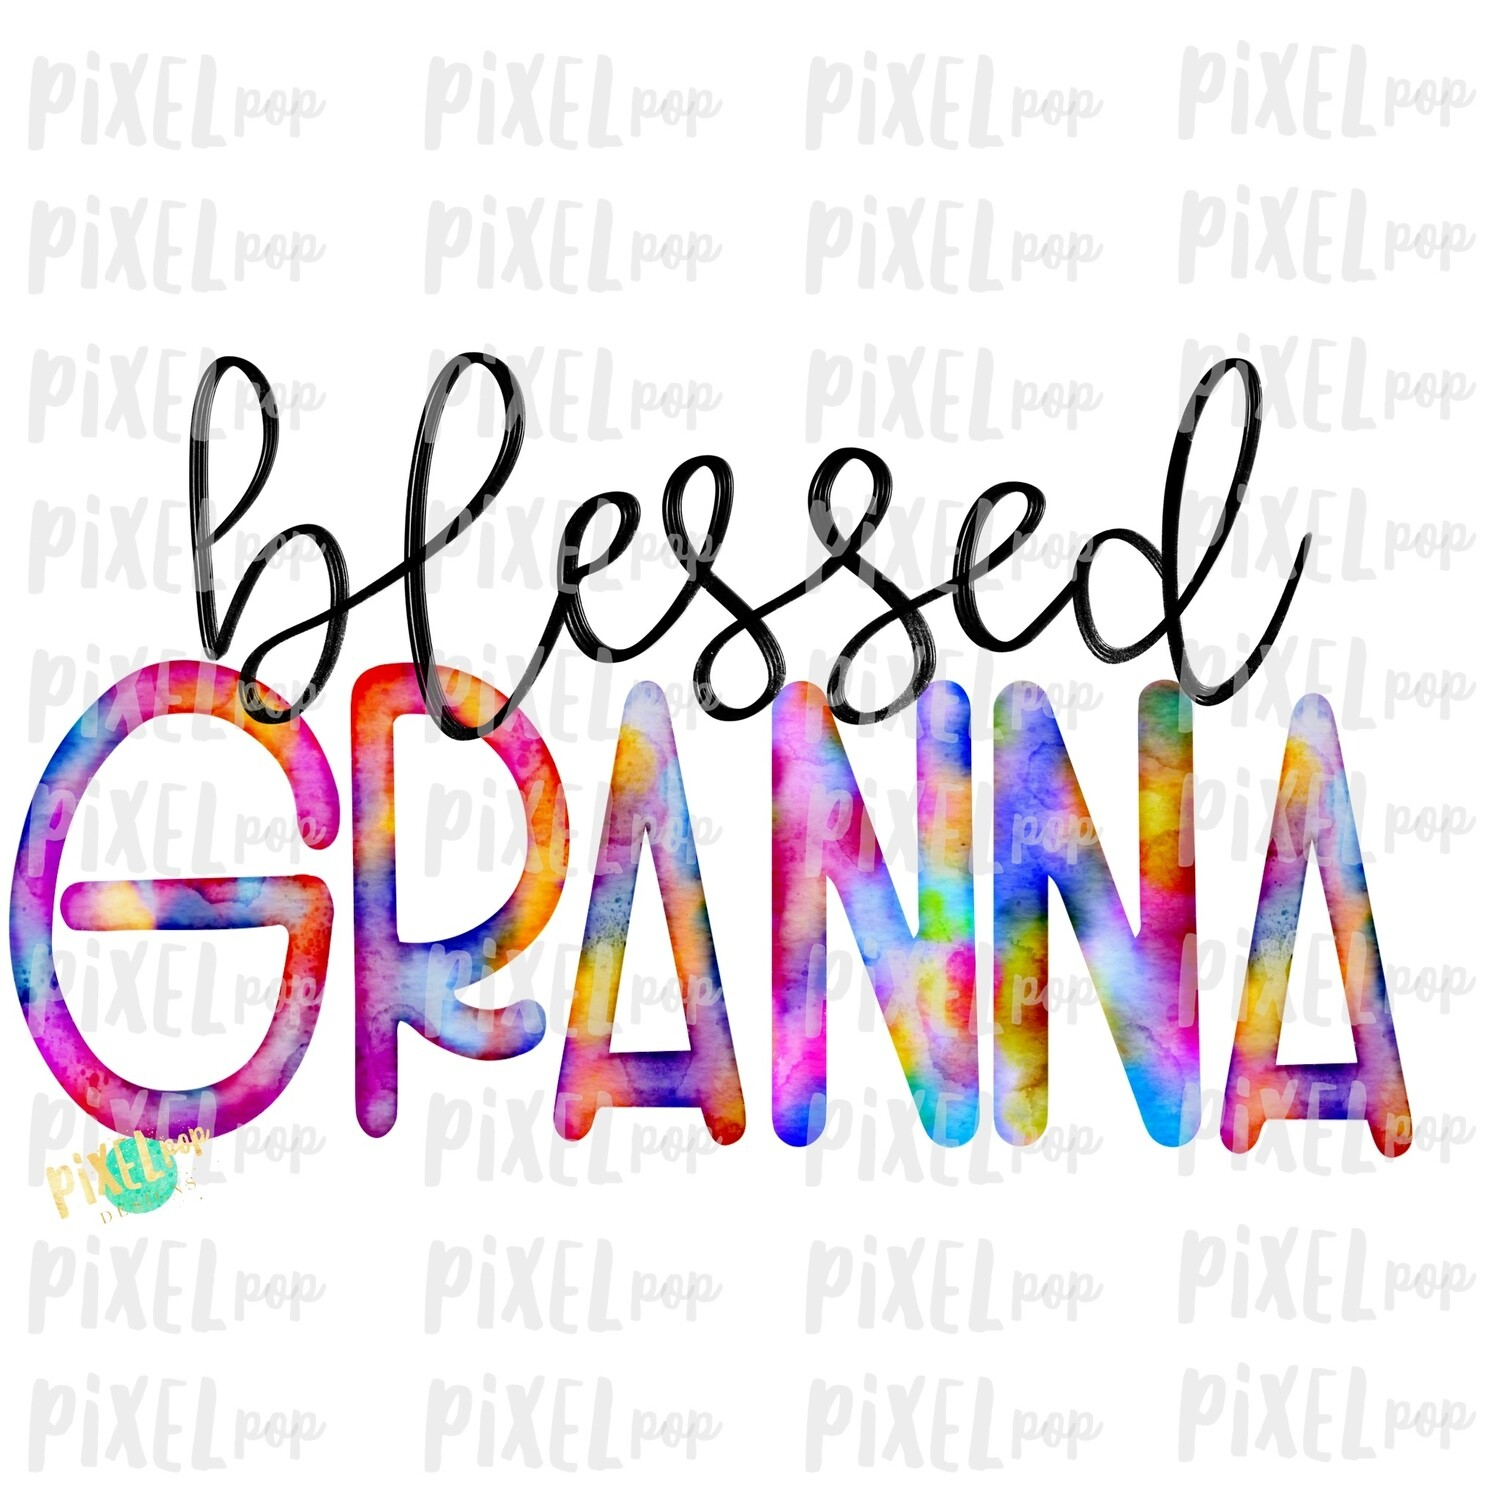 Blessed Granna Watercolor Mother's Day Sublimation Design PNG   Hand Drawn PNG   Sublimation PNG   Digital Download   Printable Art   Art